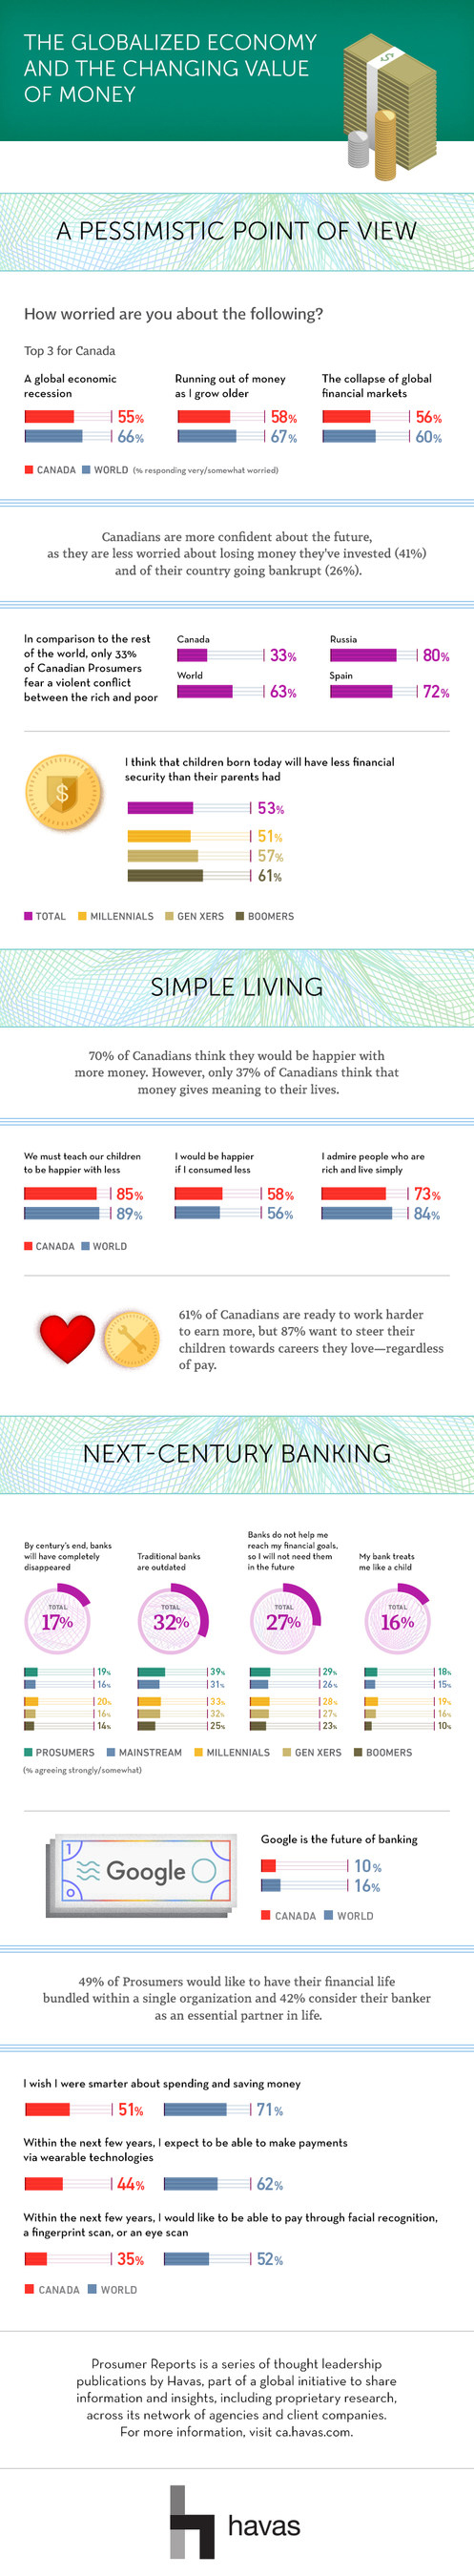 The globalized economy and the changing value of money (CNW Group/Havas Canada)